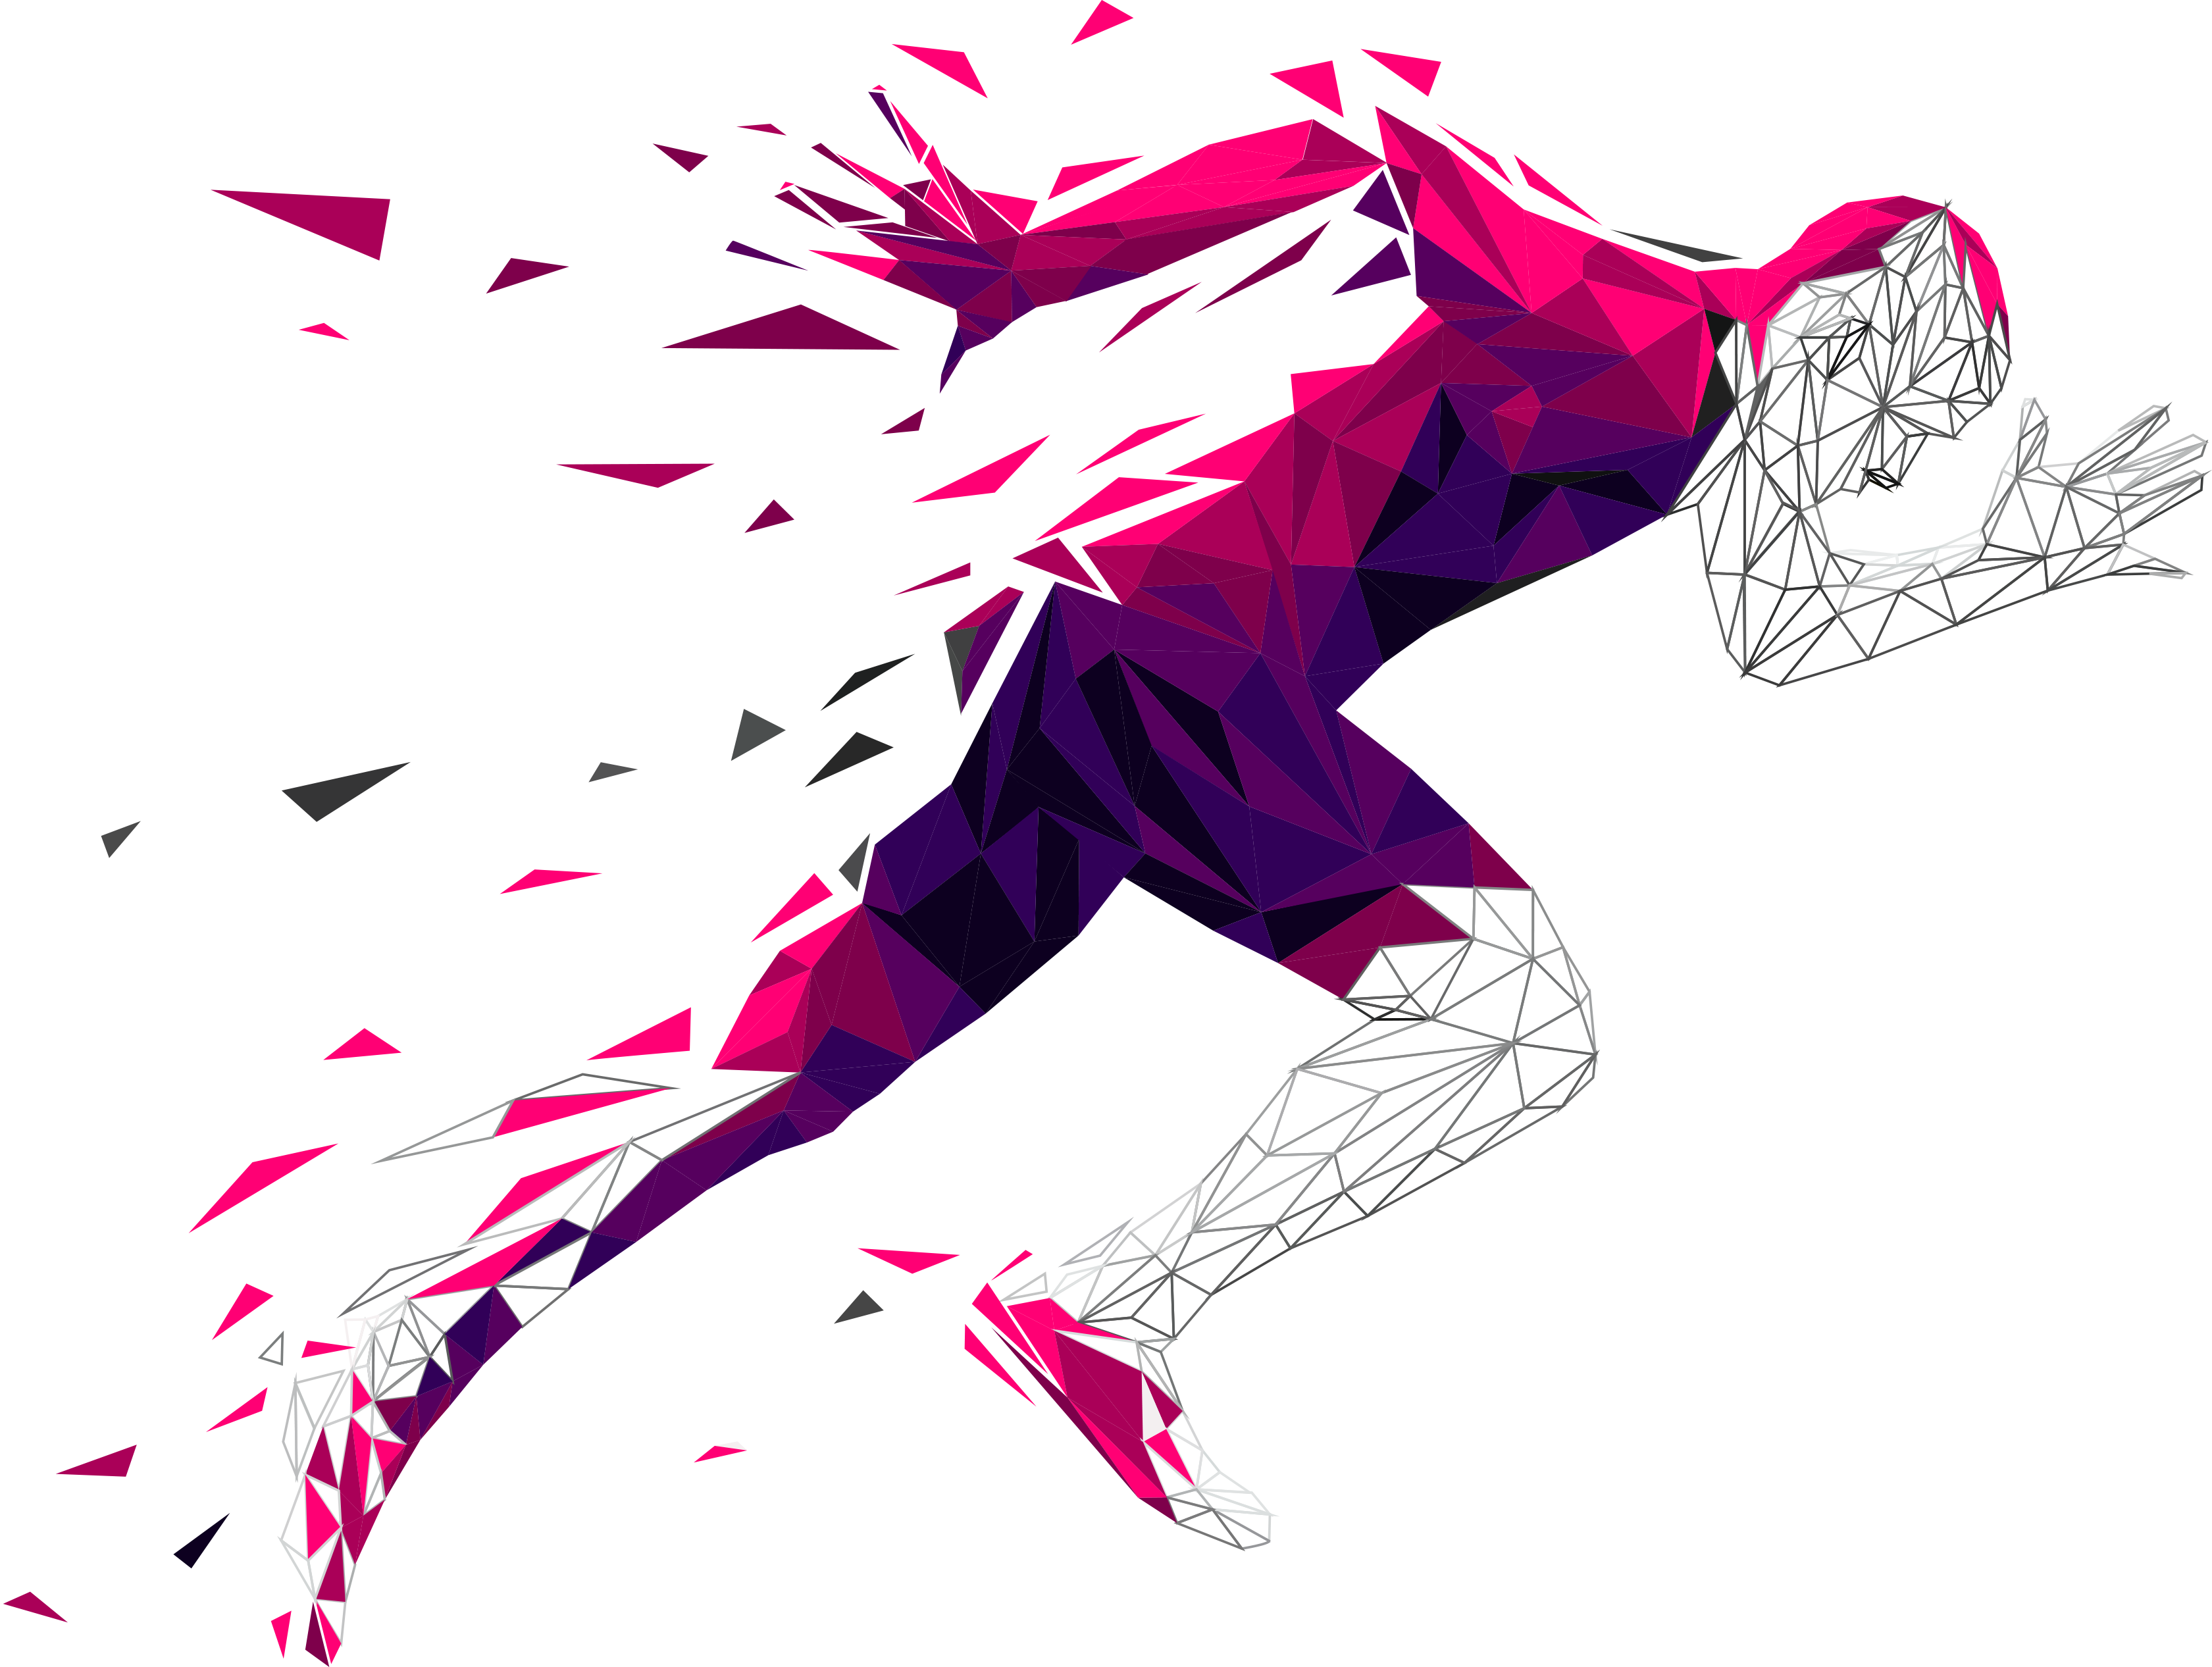 Purple person running